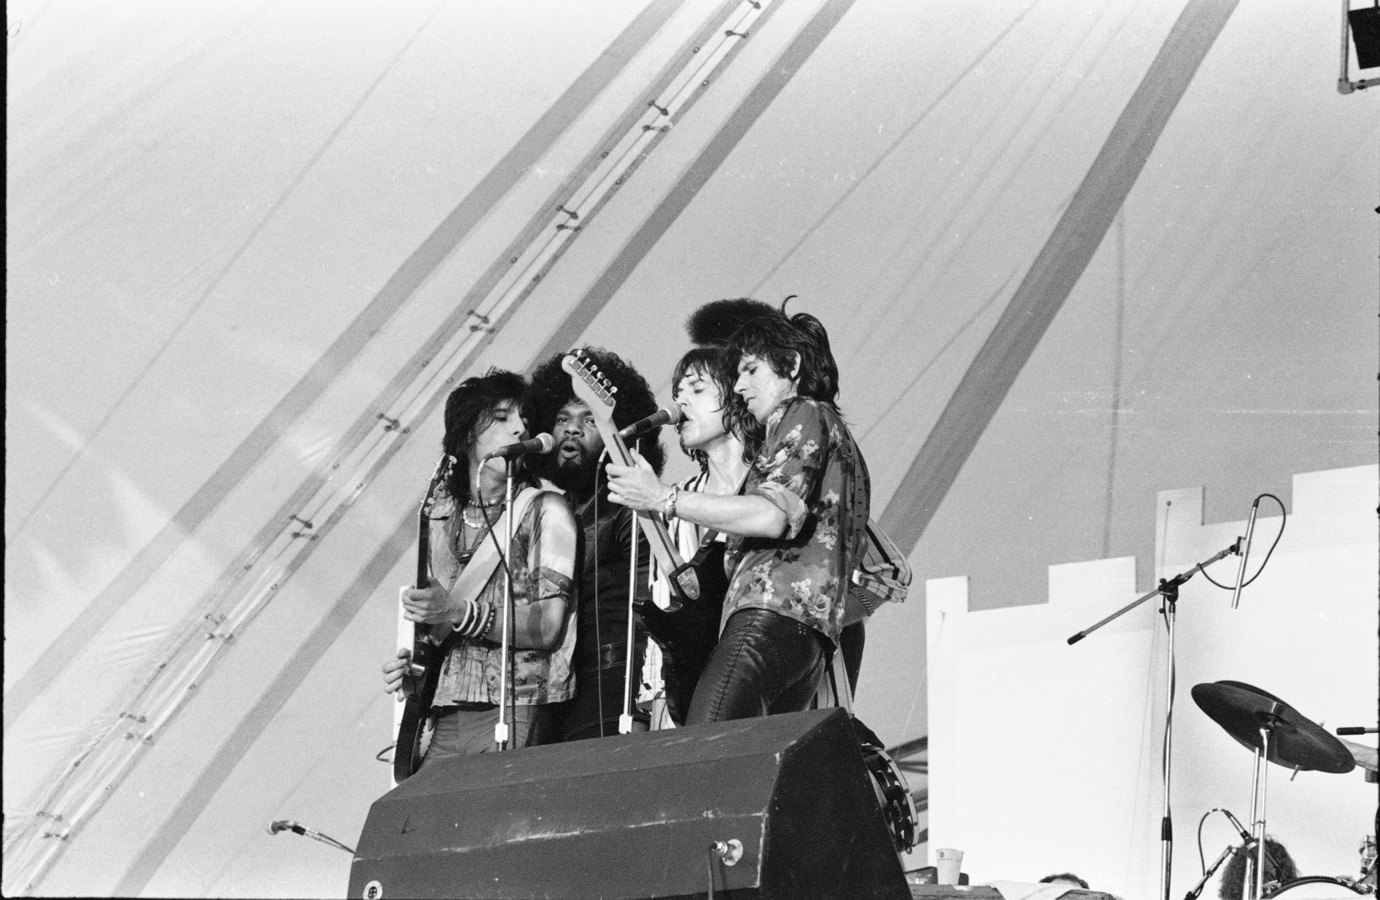 Ron Wood, the Late Billy Preston, Mick Jagger & Keith Richards.